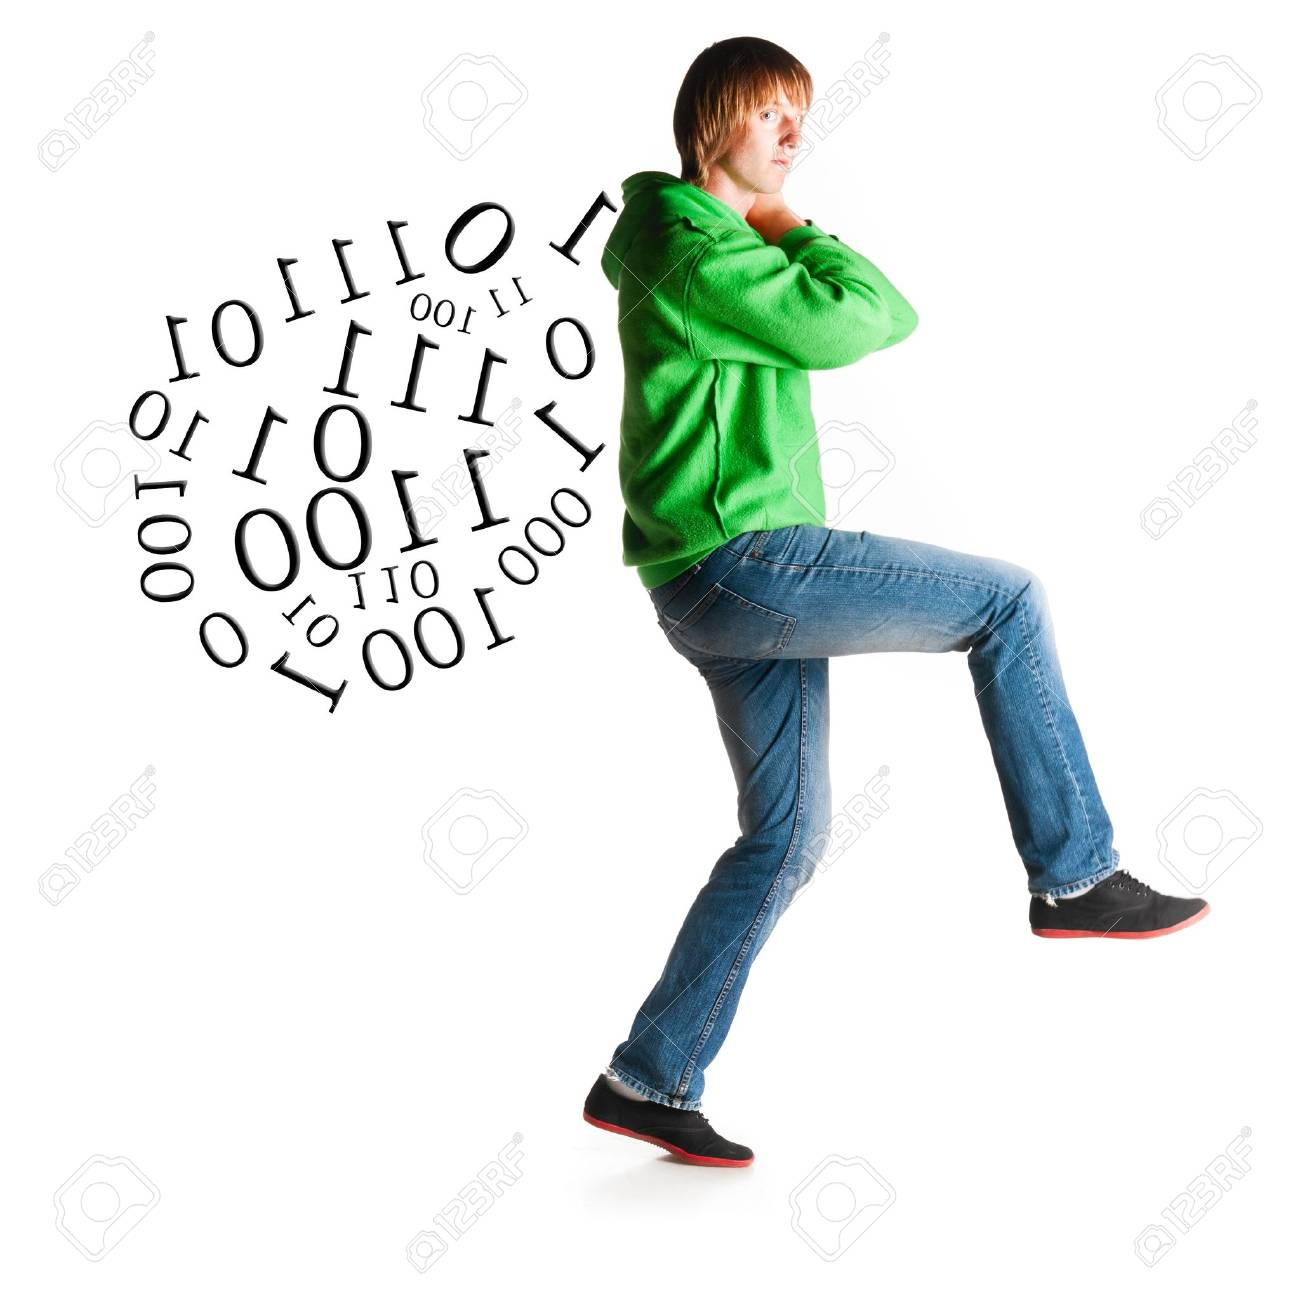 hacker is shaking out laptop Stock Photo - 13799859